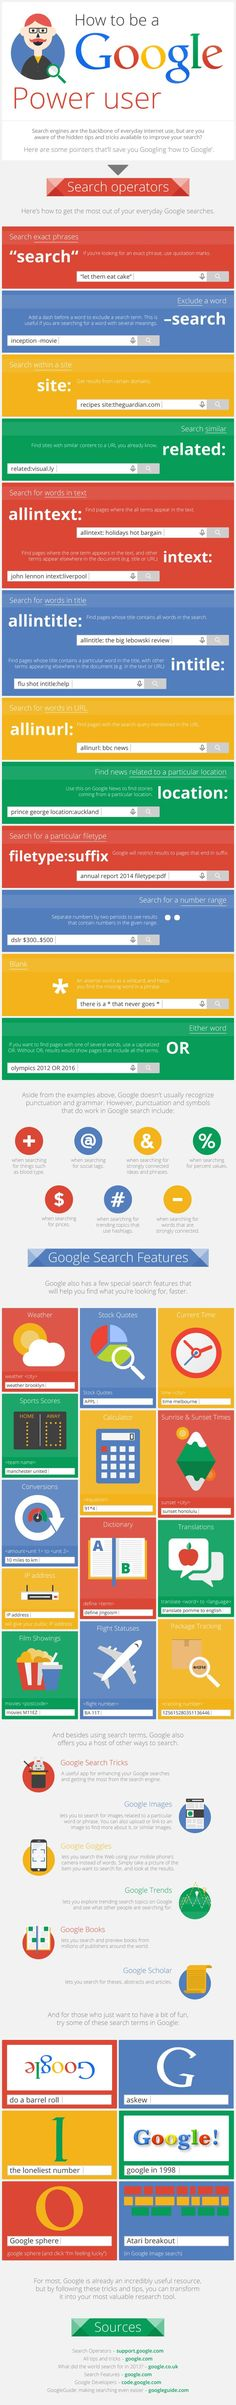 How to Be A Google Power User - #Google #infographic